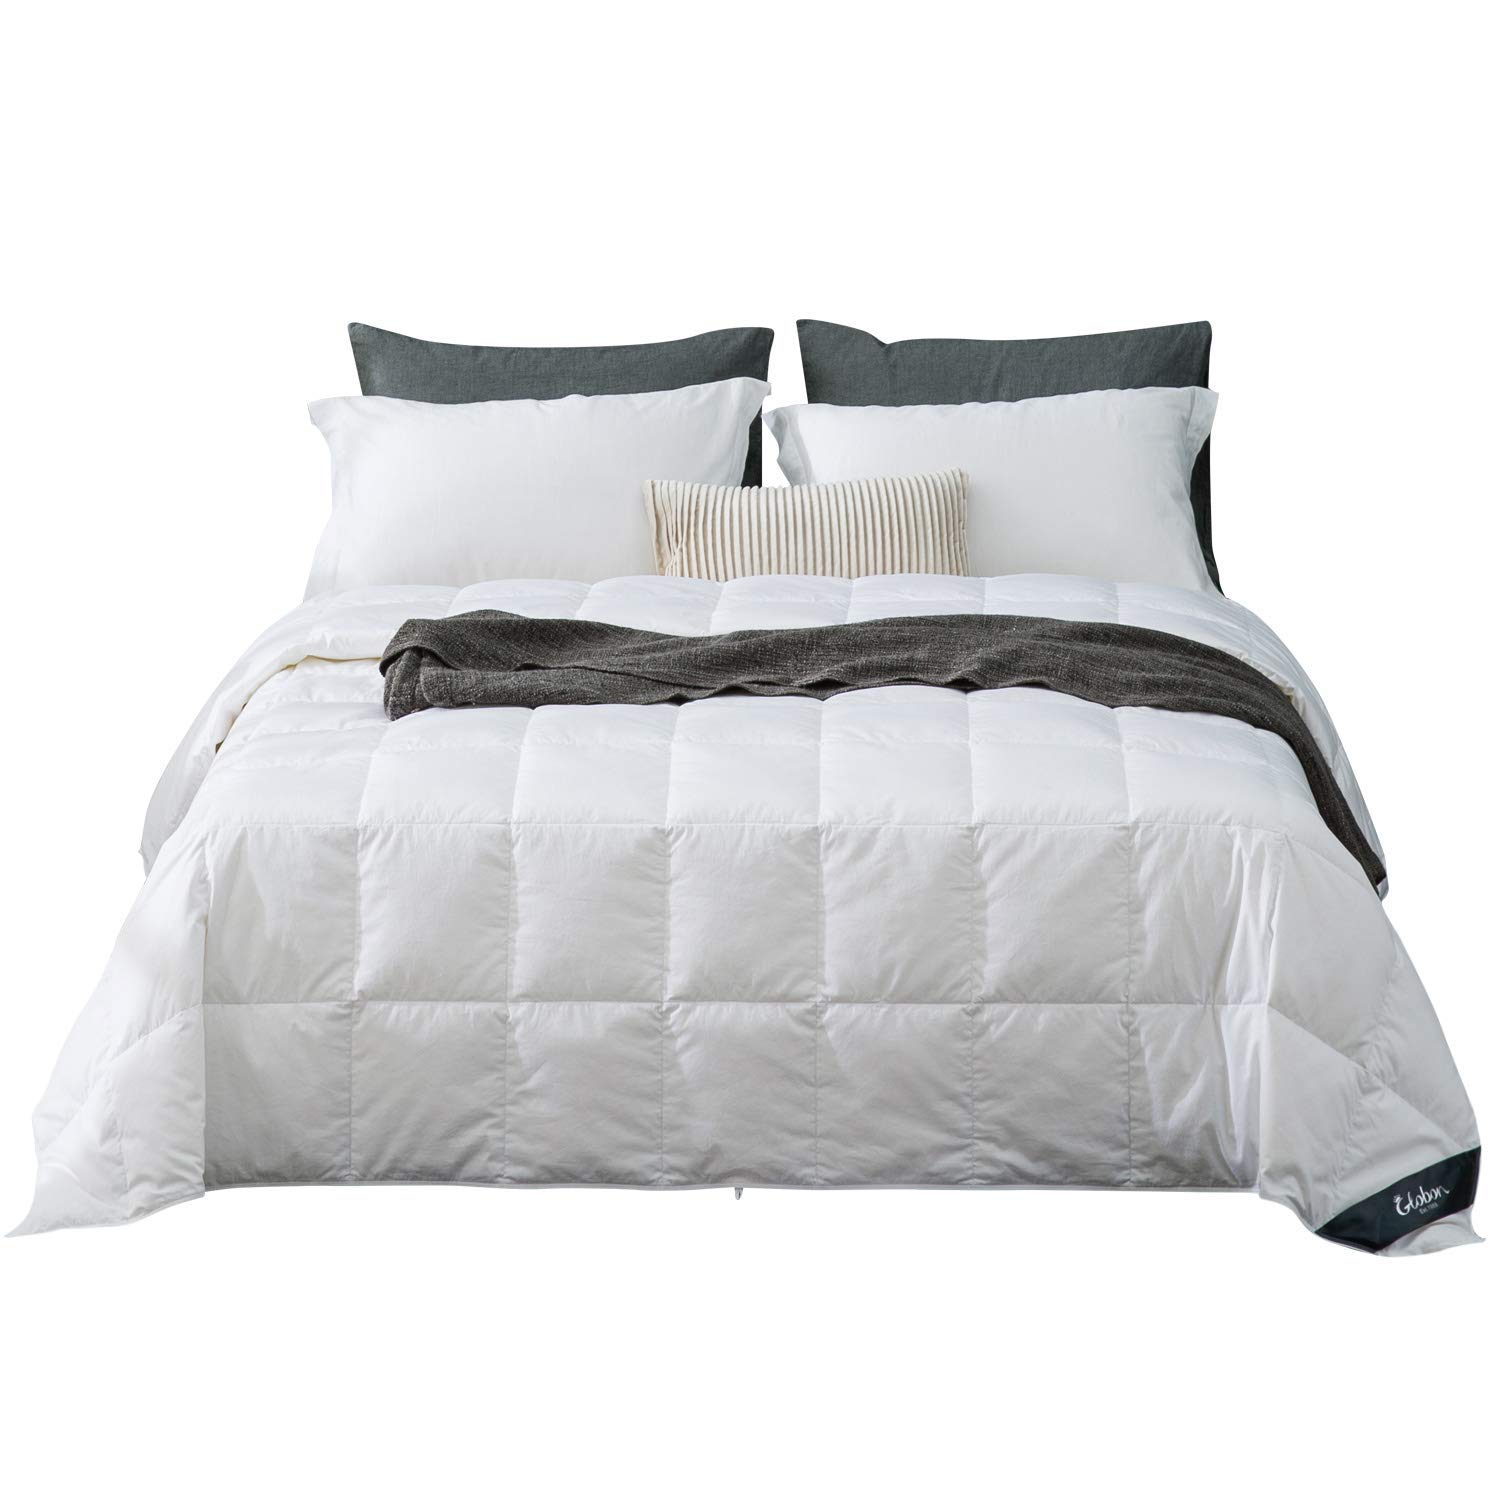 Globon Best Down Comforter Reviews by www.snoremagazine.com